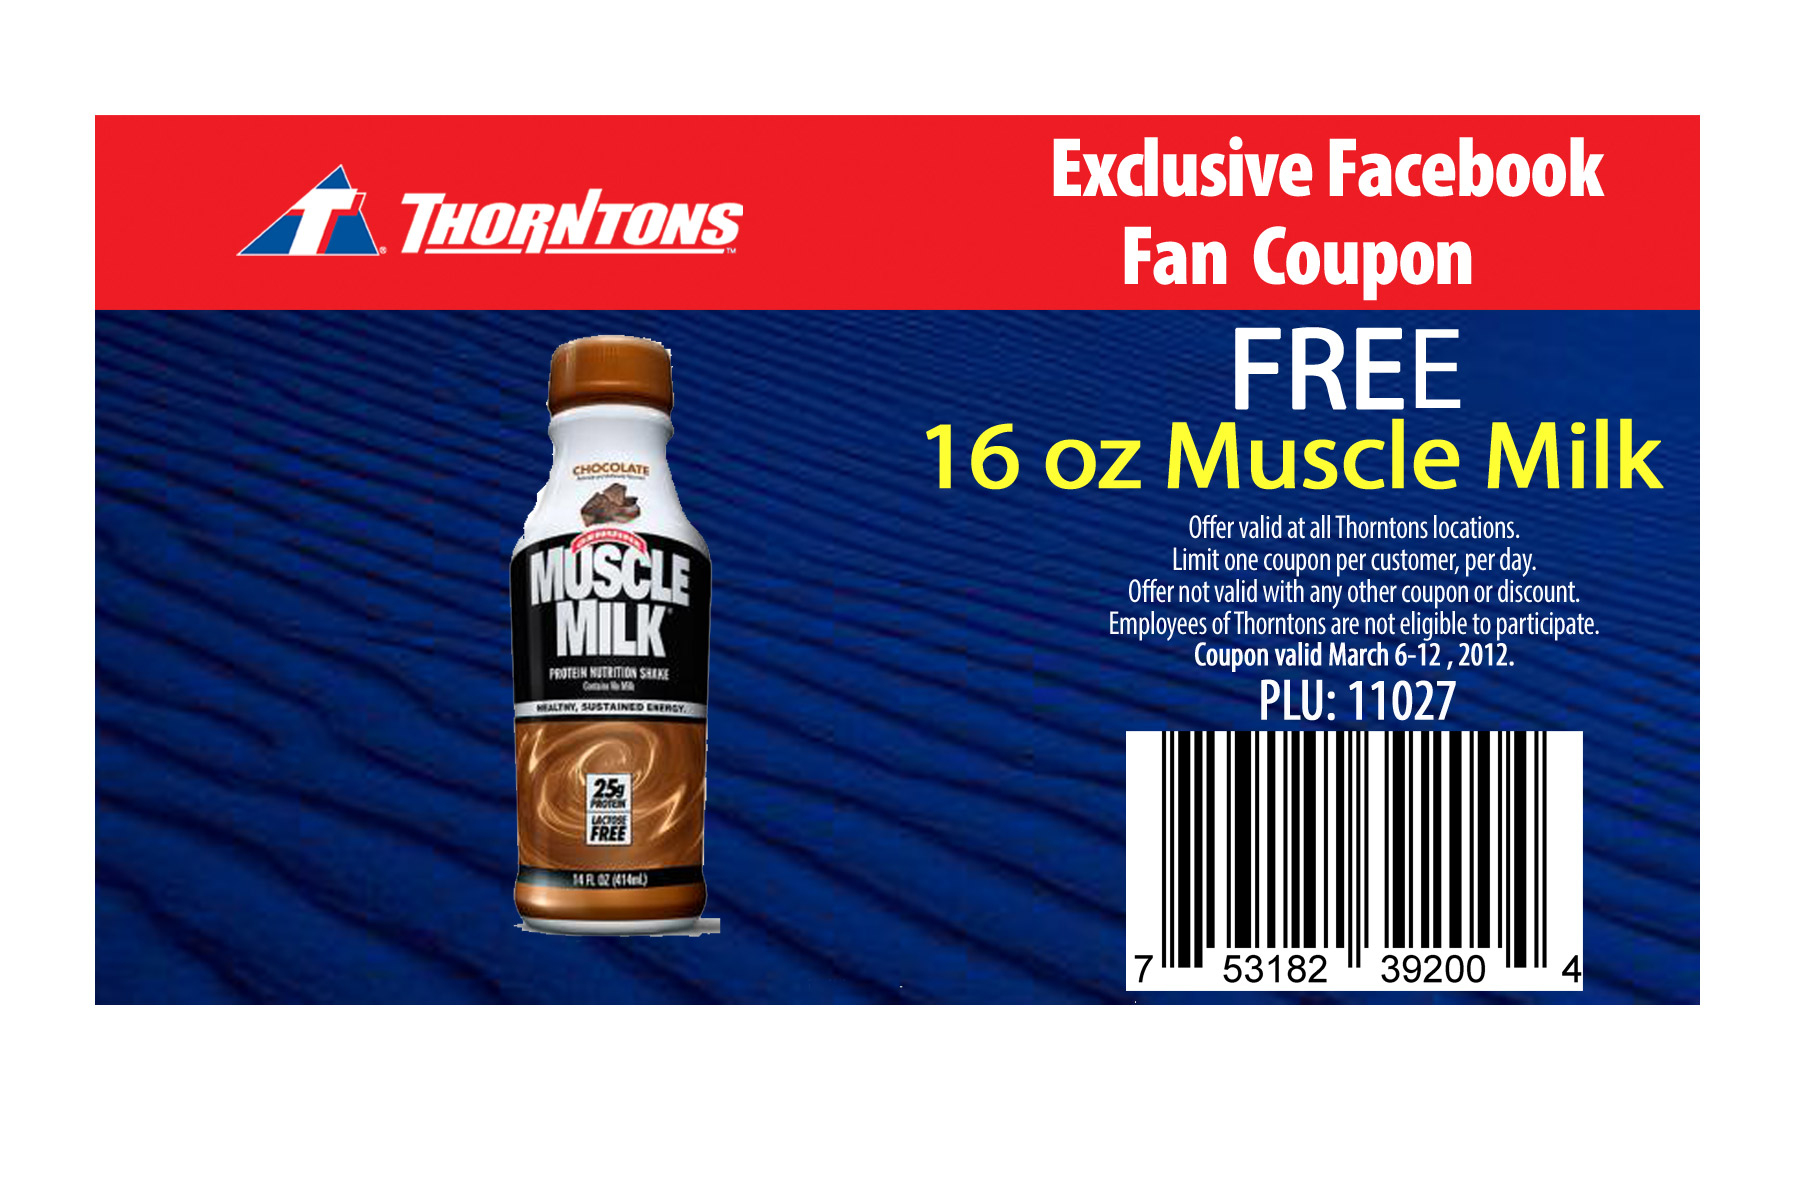 Free 16 Oz Muscle Milk At Thorntons - Free Milk Coupons Printable